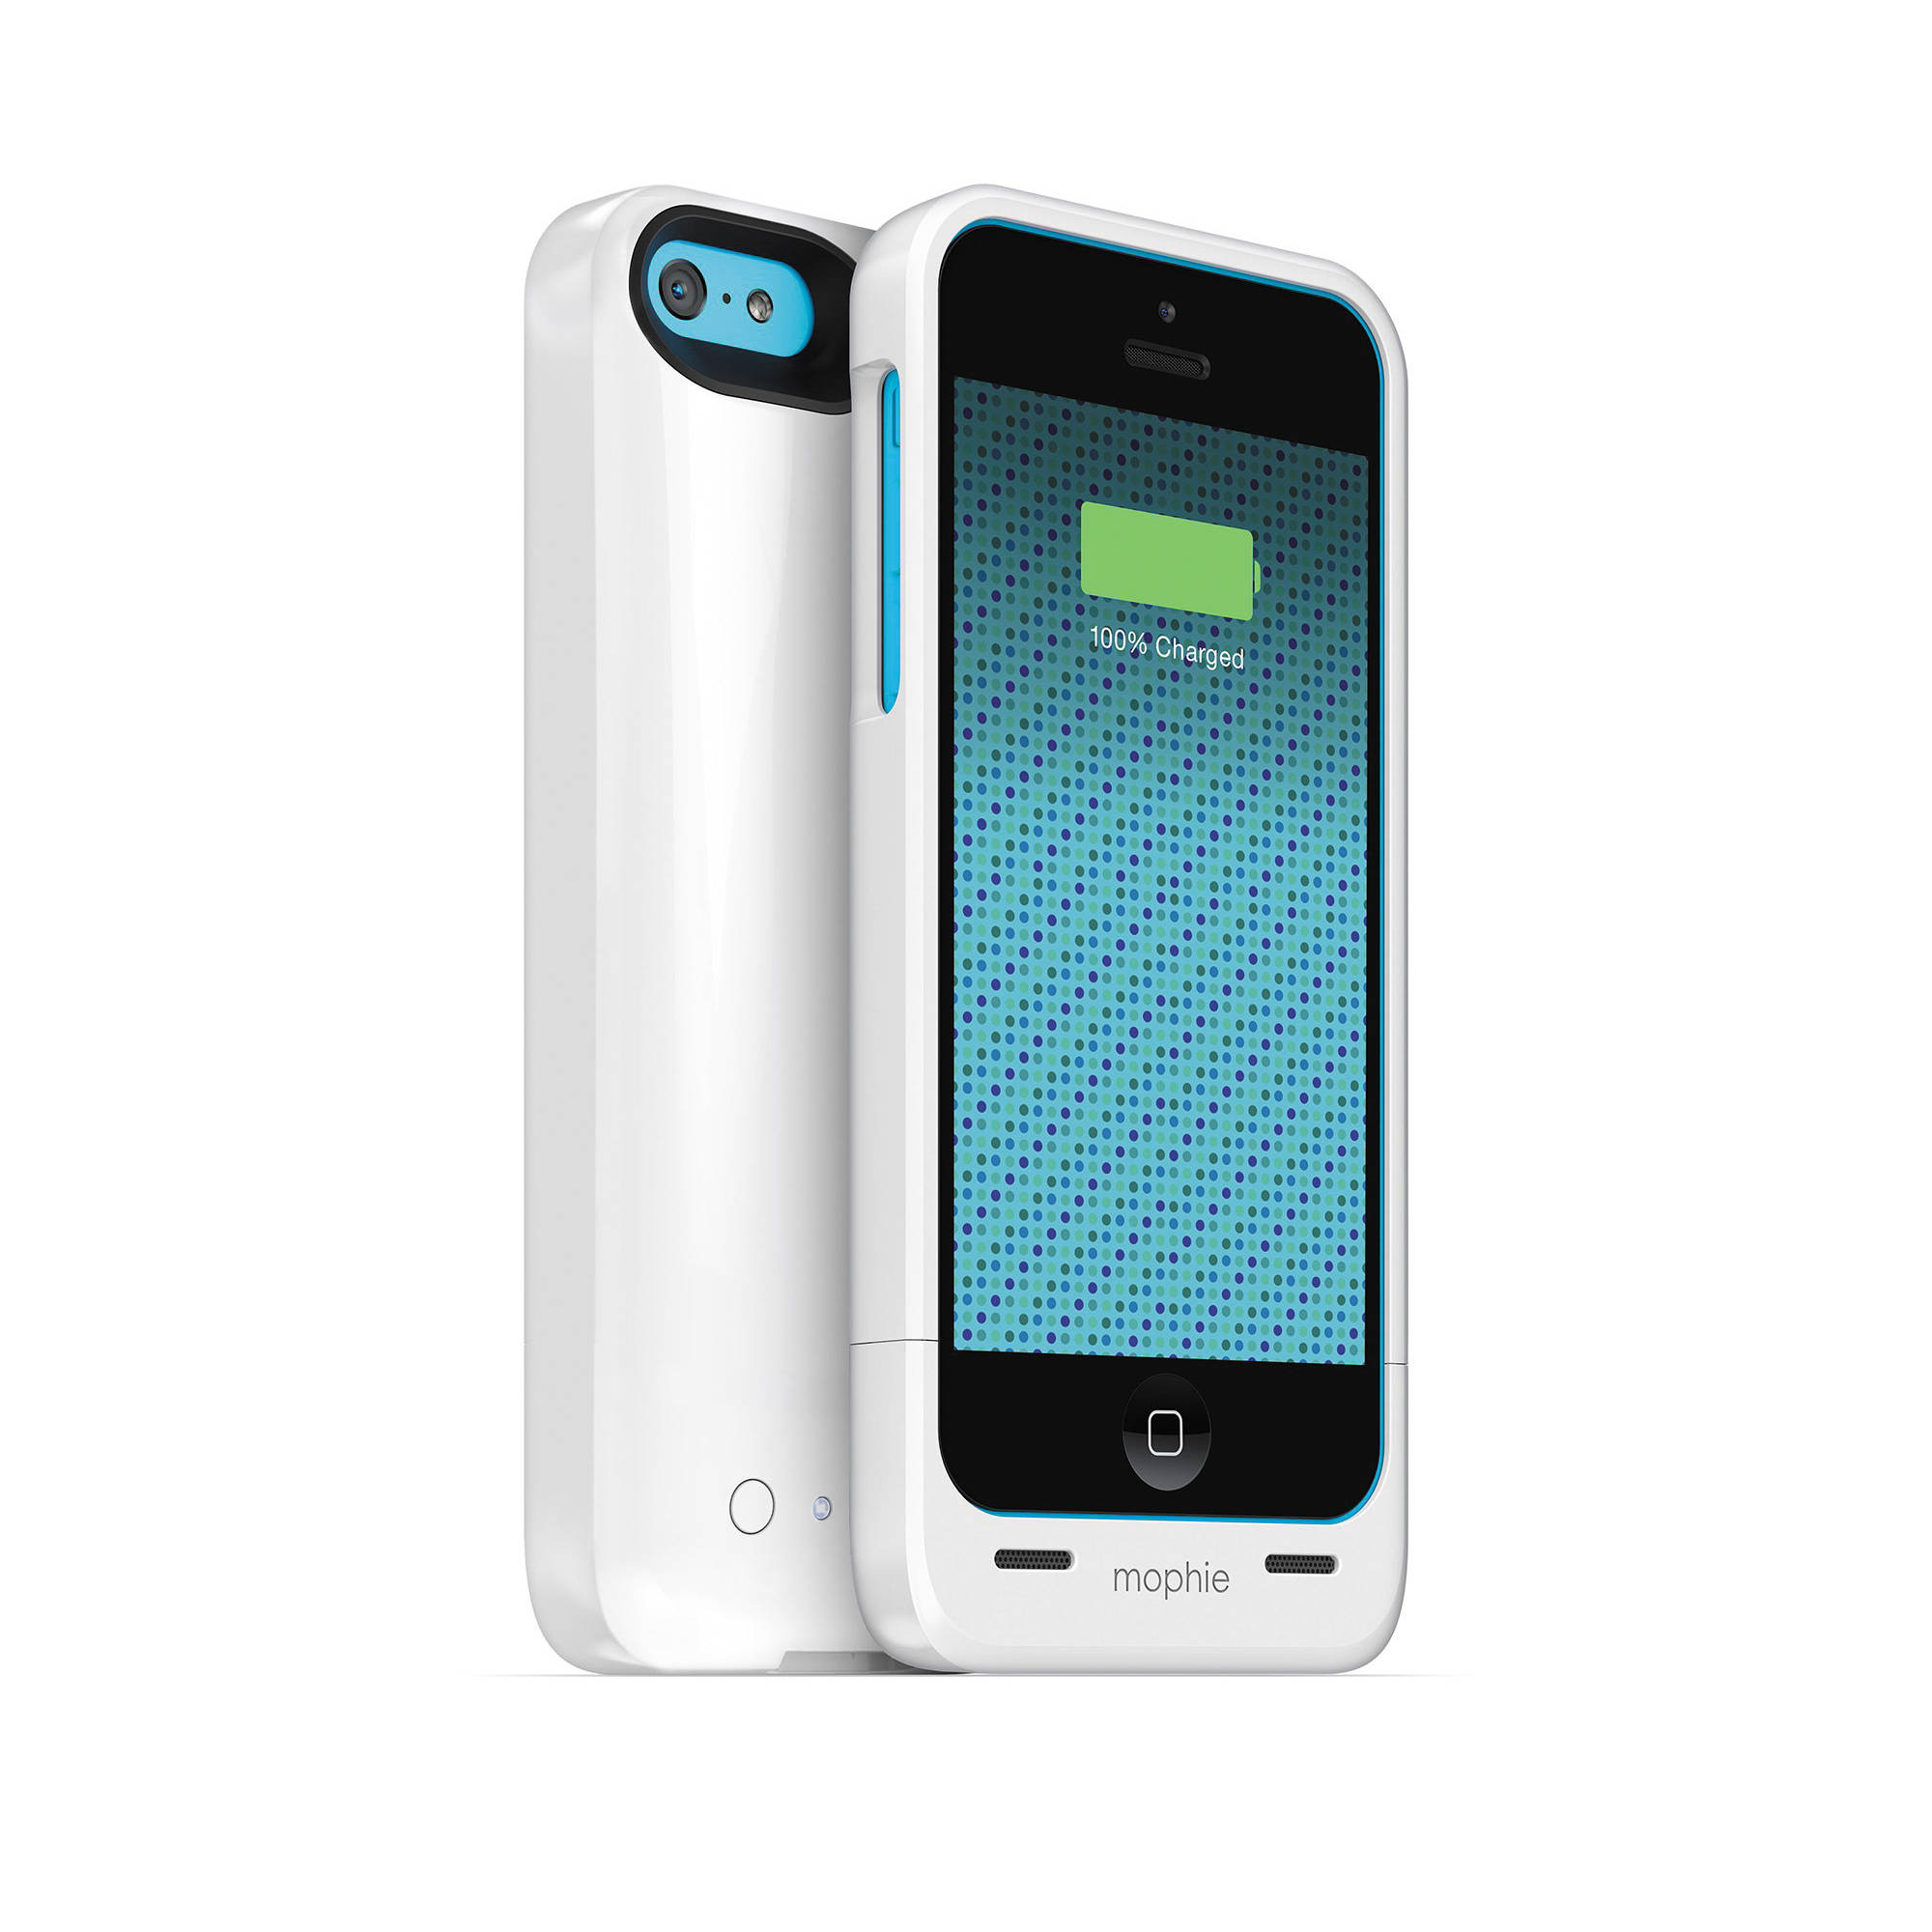 iphone 5c mophie mophie juice pack helium for iphone 5c gloss white 2661 b amp h 11109